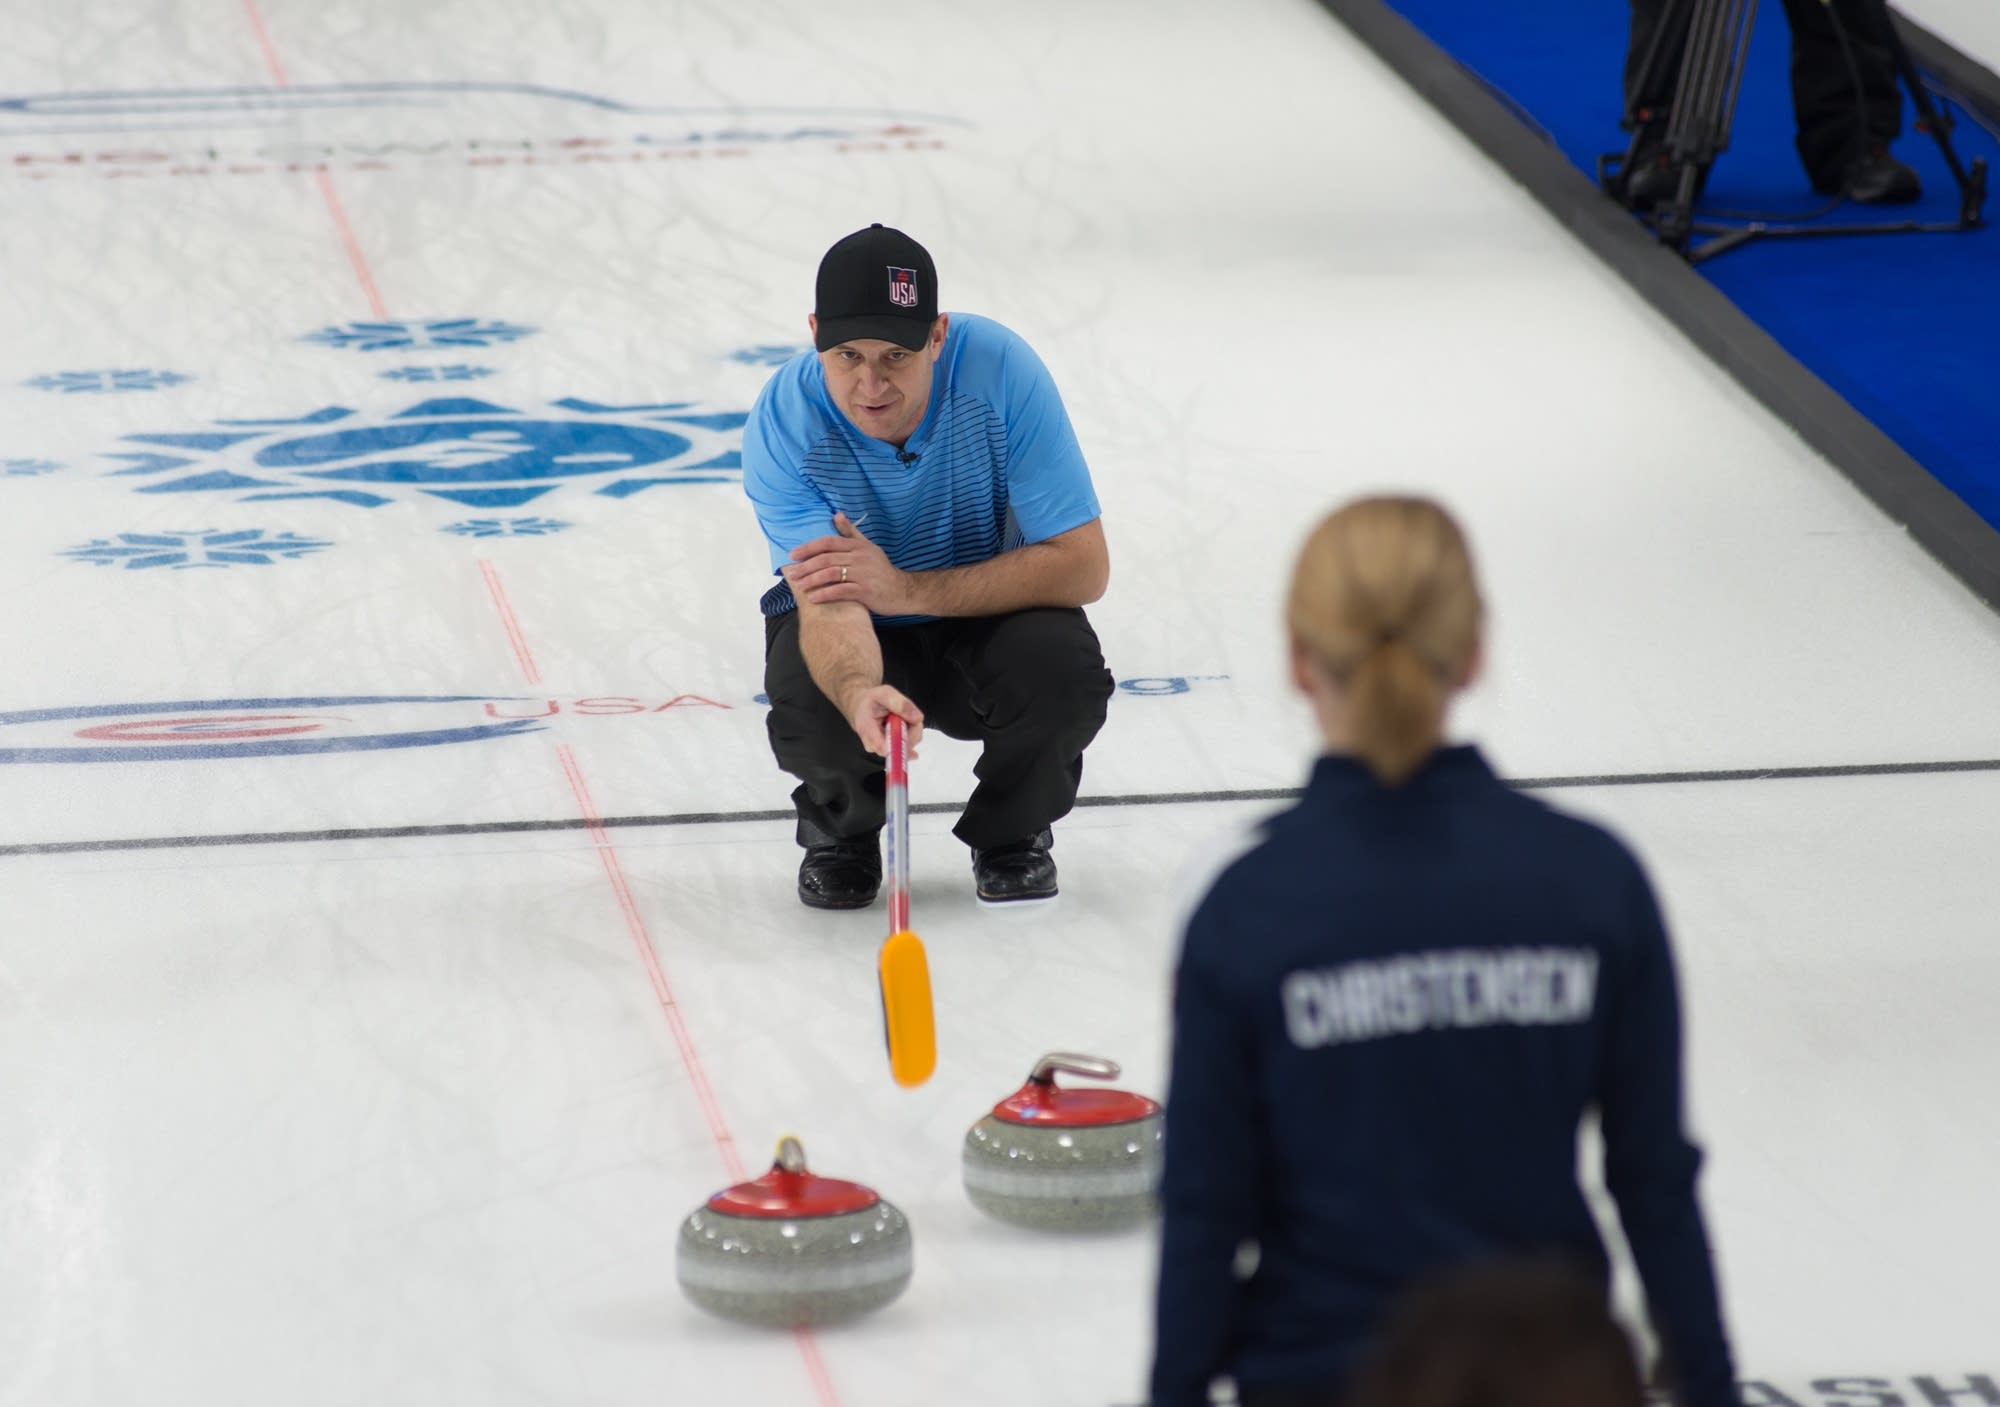 John Shuster consults with teammate Cory Christensen during the final.